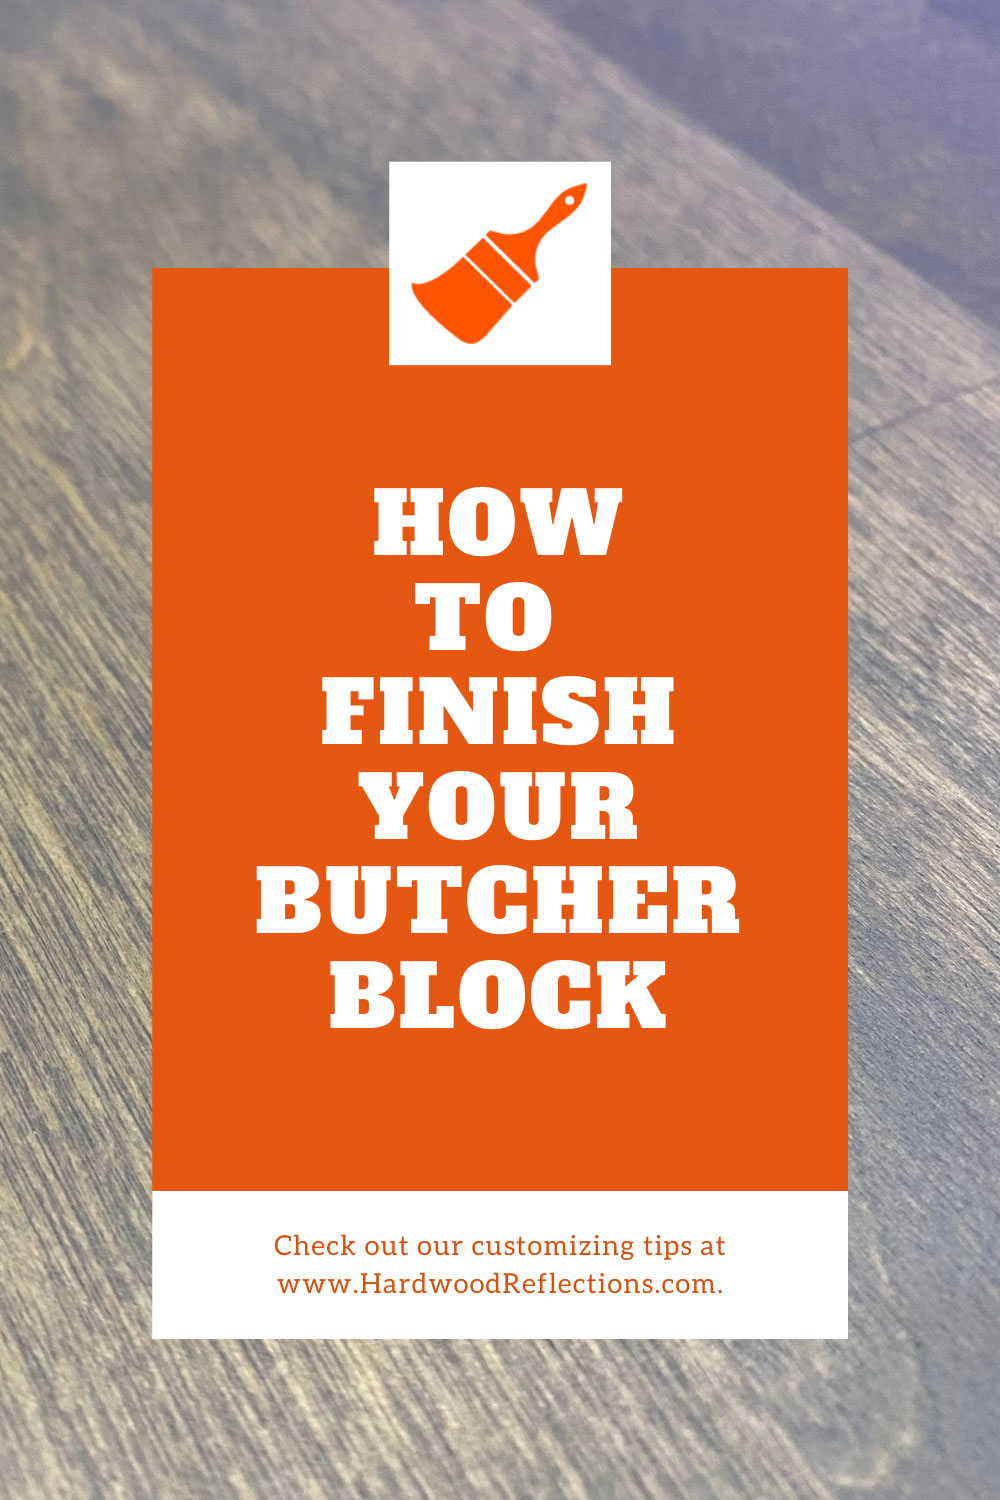 How to Finish your Butcher Block